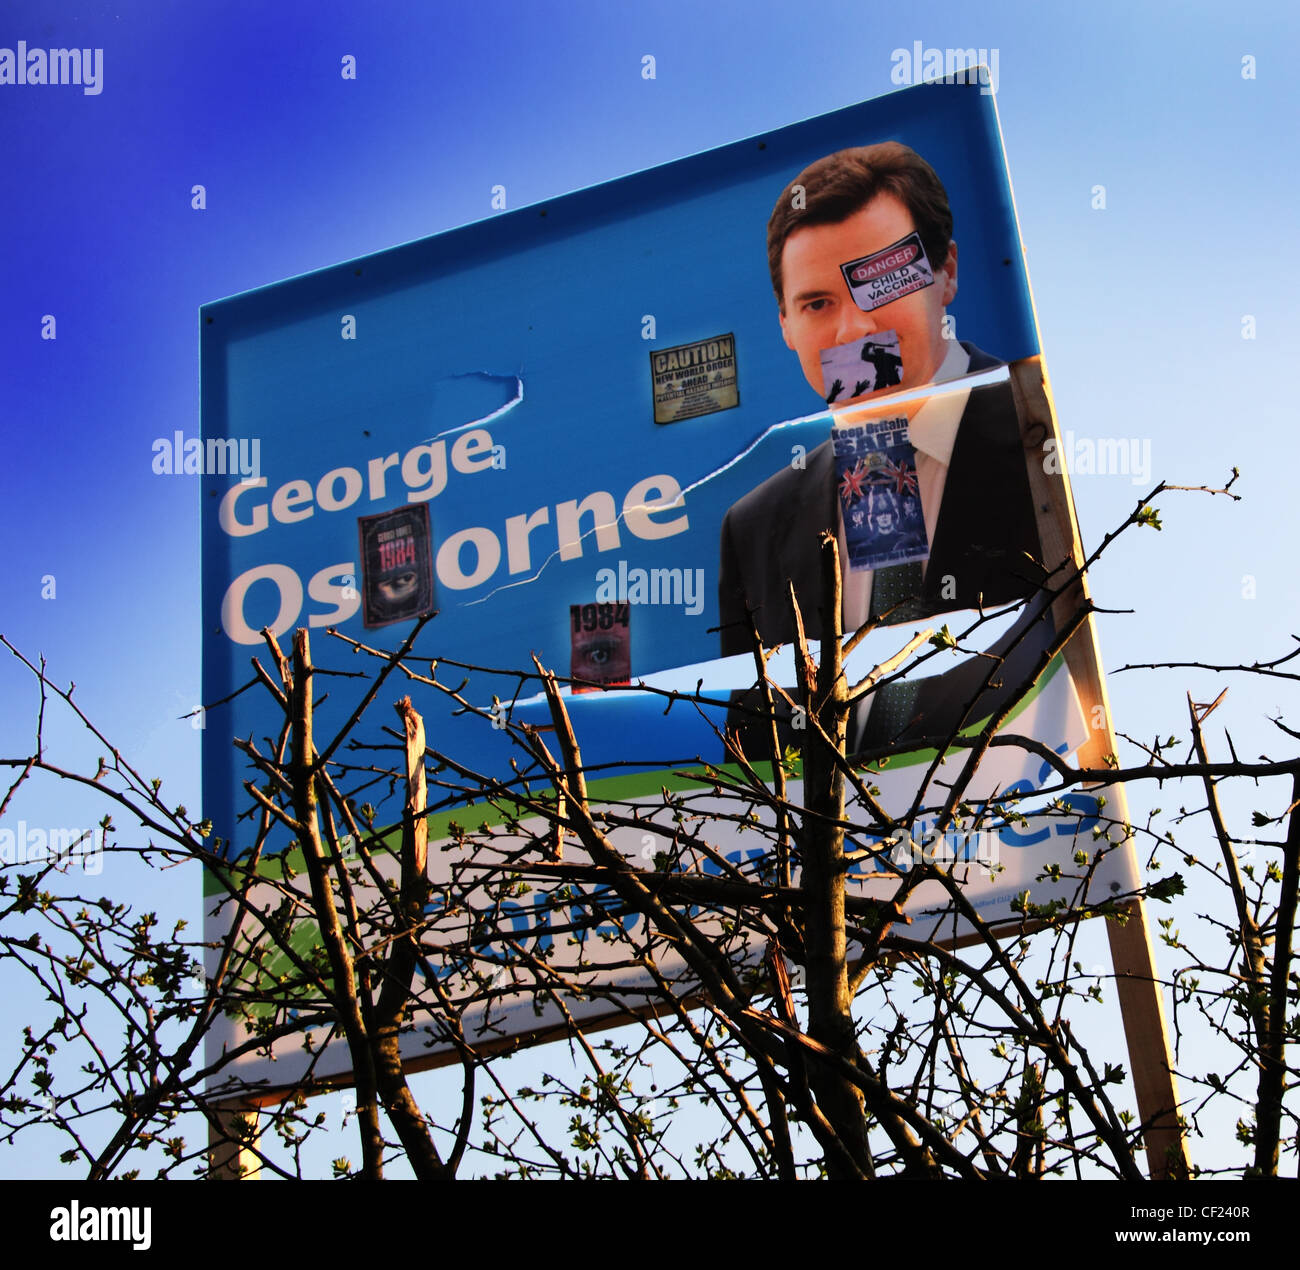 Defaced,2010,Election,Poster,for,George,Gideon,Osbourne,now,elected,MP,and,Conservative,Chancellor,for,Tatton,Ward,Cheshire,gotonysmith,farmers,field,protest,shot,hate,tory,hatred,hated,rich,career,knutsford,pickmere,Northwich,campaign,trail,George,Gideon,Oliver,Osborne,British,Conservative,politician.,He,is,the,Chancellor,of,the,Exchequer,of,the,United,Kingdom,a,role,to,which,he,was,appointed,in,May,2010,and,has,been,the,Member,of,Parliament,for,Tatton,since,2001,Osborne,is,part,of,the,old,Anglo-Irish,aristocracy,and,is,heir,to,the,Osborne,baronetcy.,educated,at,St,Pauls,School,and,Magdalen,College,Oxford,father,Sir Peter Osborne,17th Baronet,co-founded,the,firm,of,fabric,and,wallpapers,designers,Osborne,&,Little,gotonysmith,George,Gideon,Oliver,Osborne,Buy Pictures of,Buy Images Of